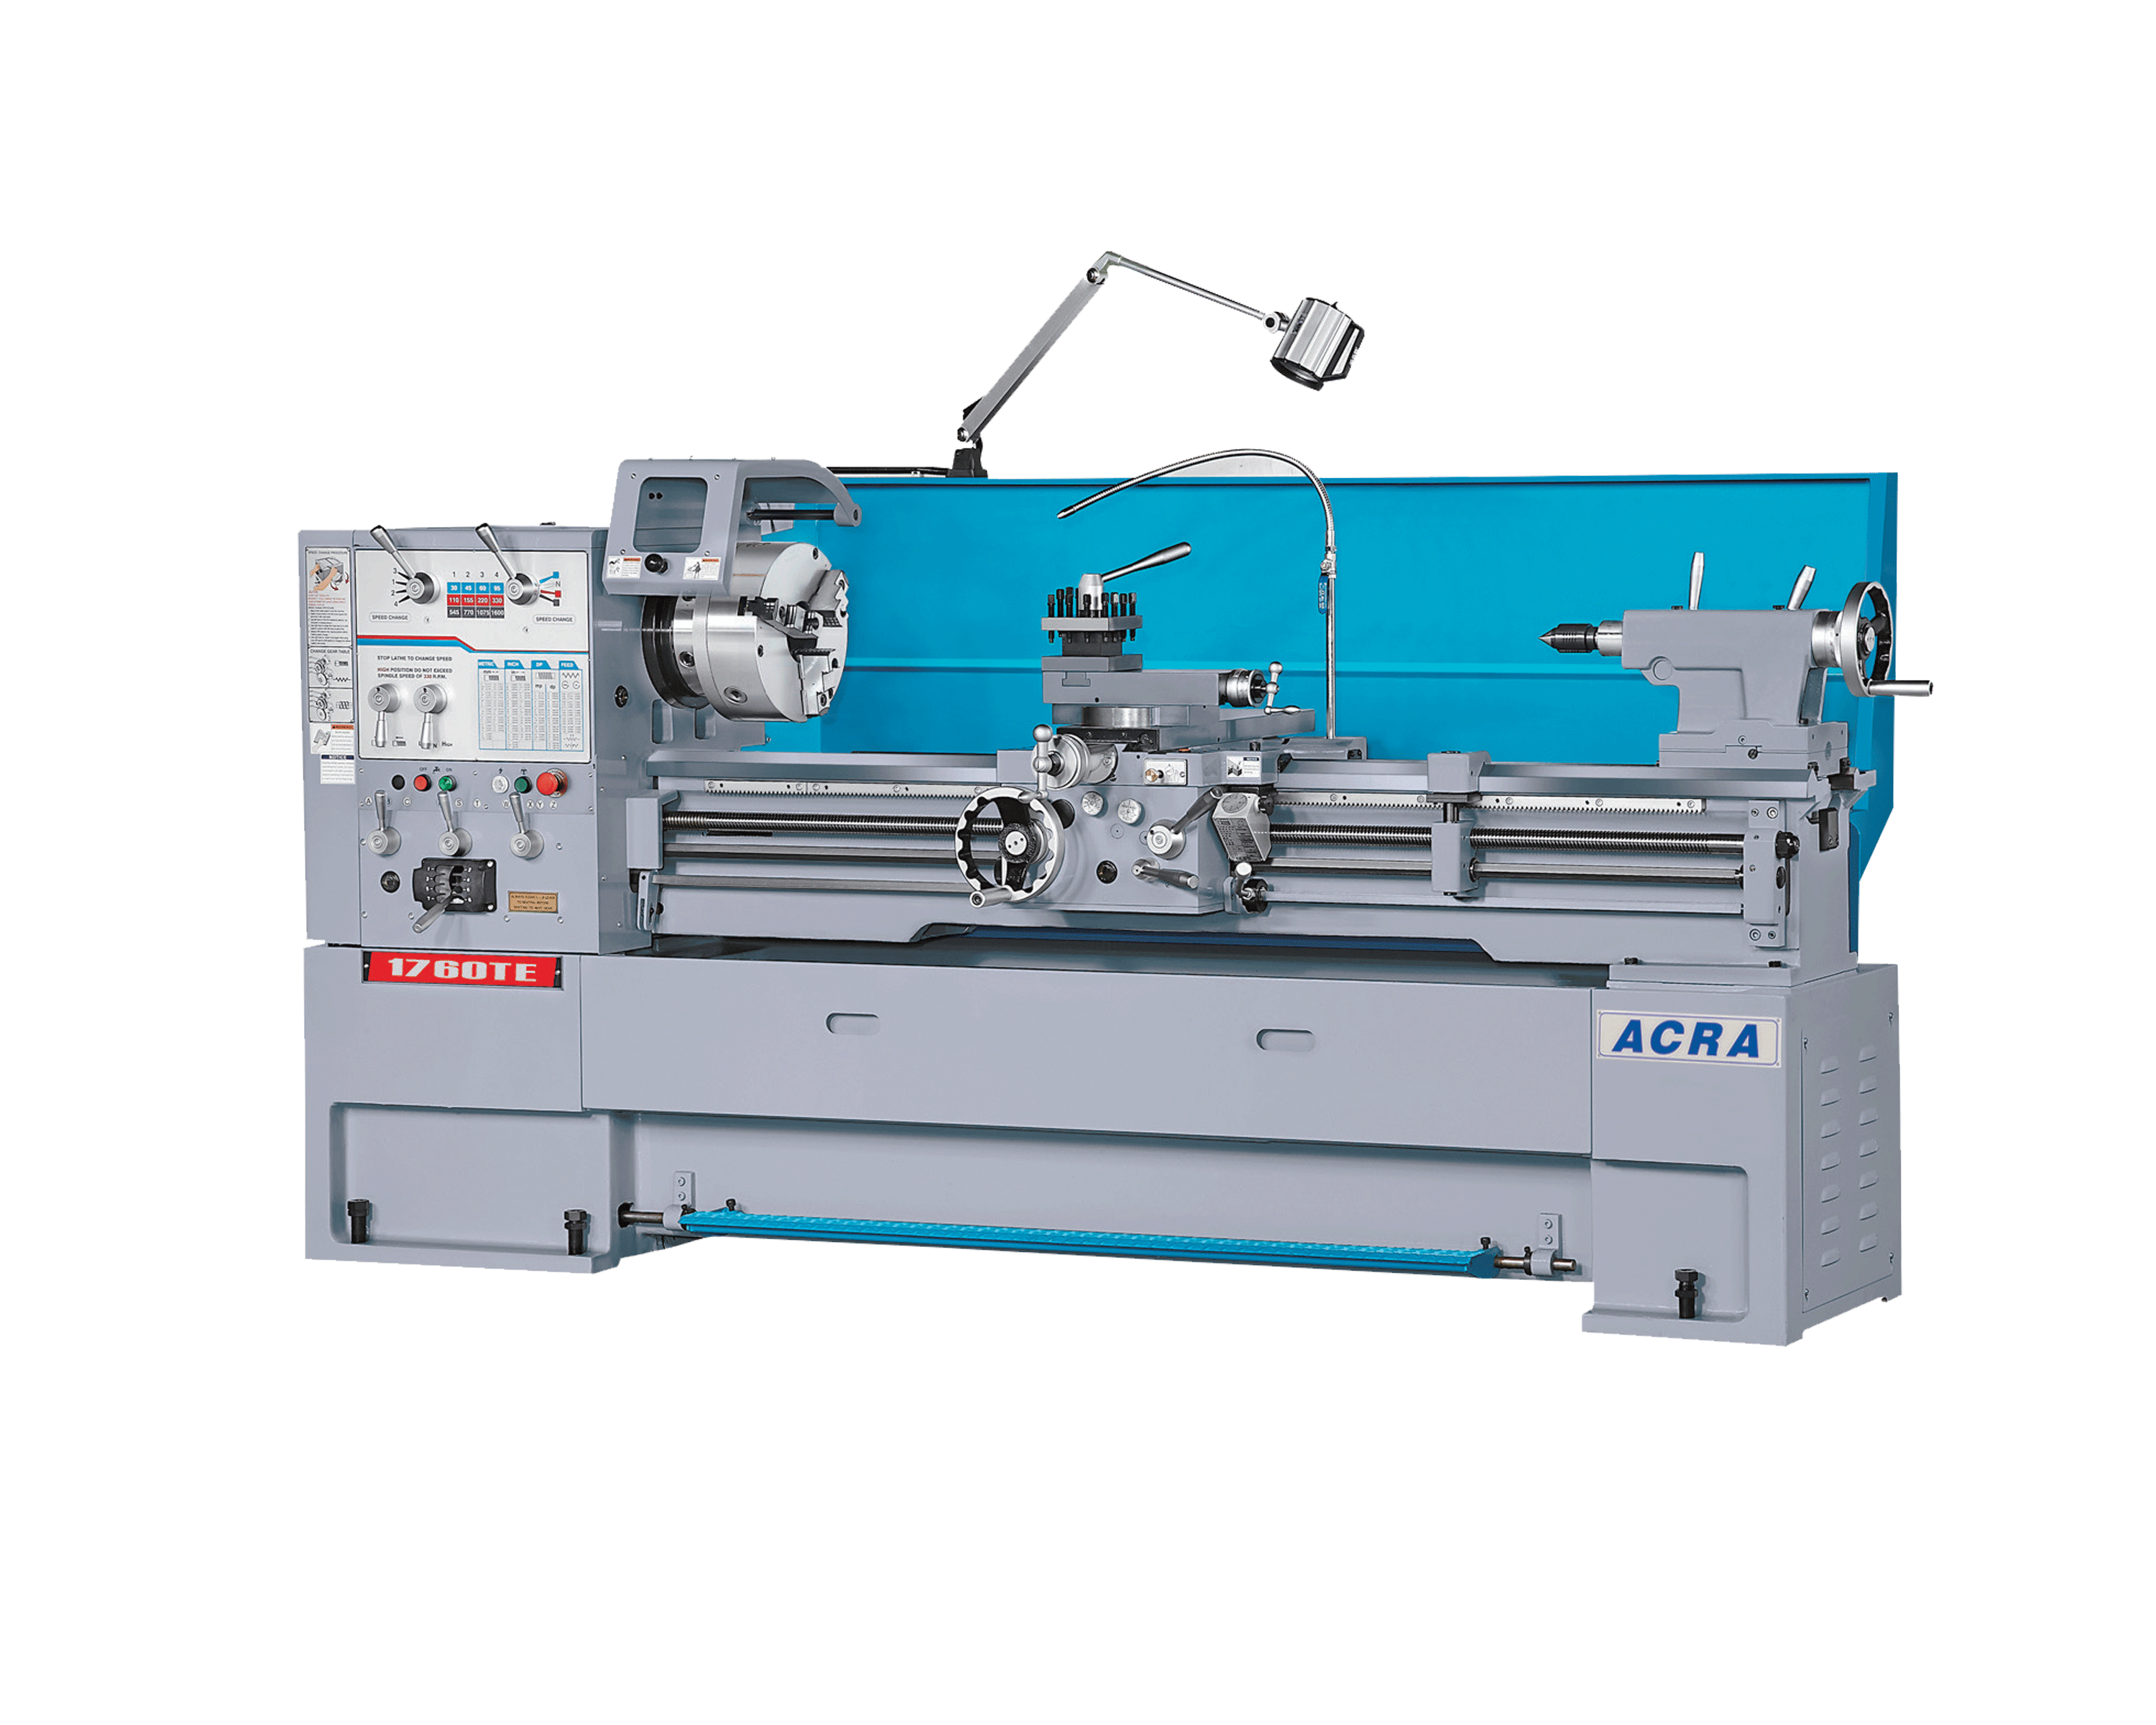 "17"" X 60"" ACRA MODEL 1760TE (3-1/8"" BORE) PRECISION HIGH SPEED GAP BED ENGINE LATHE"